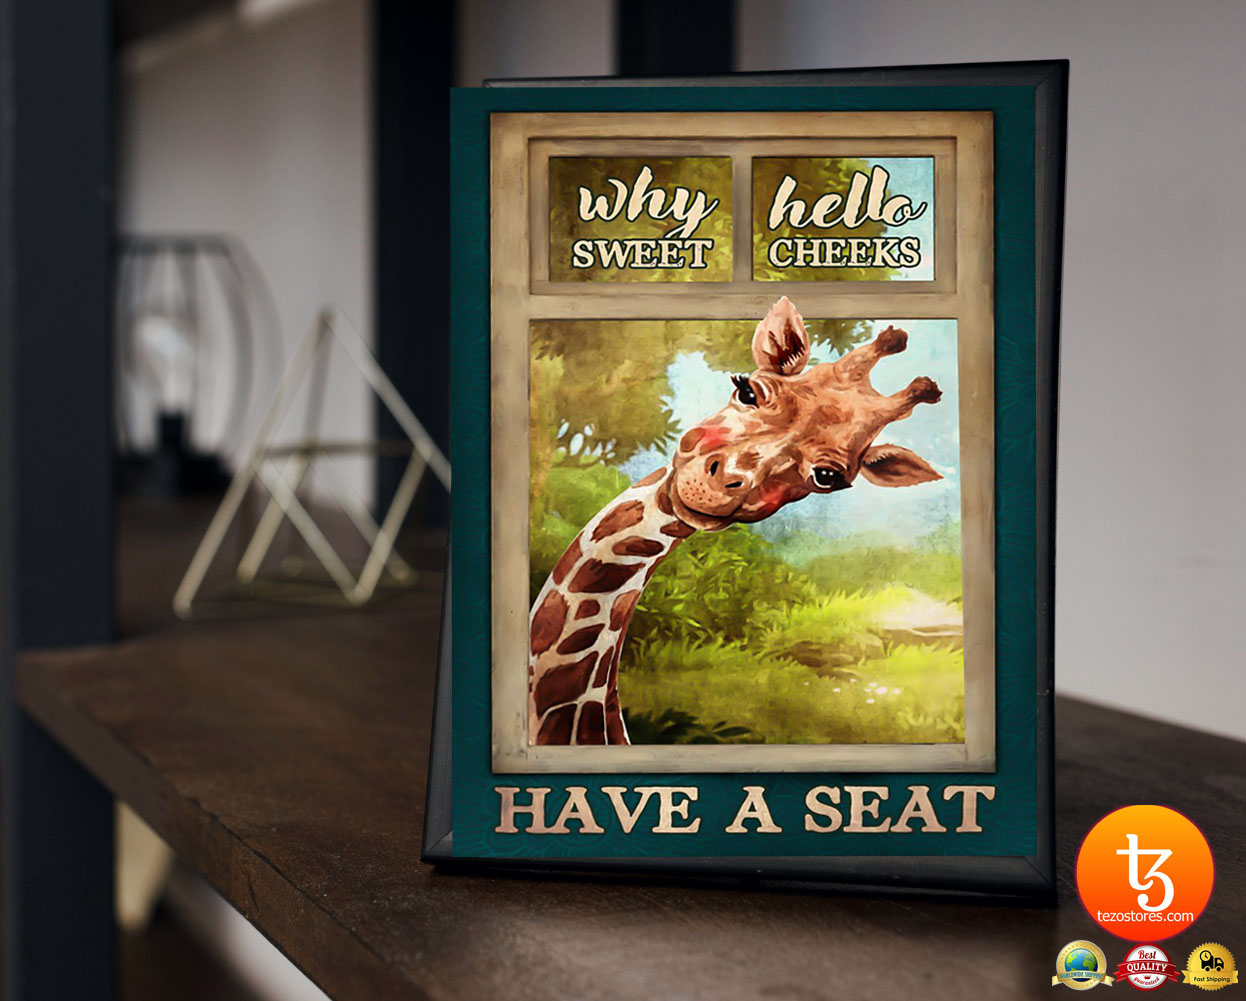 Giraffe why hello sweet cheeks have a seat poster 23